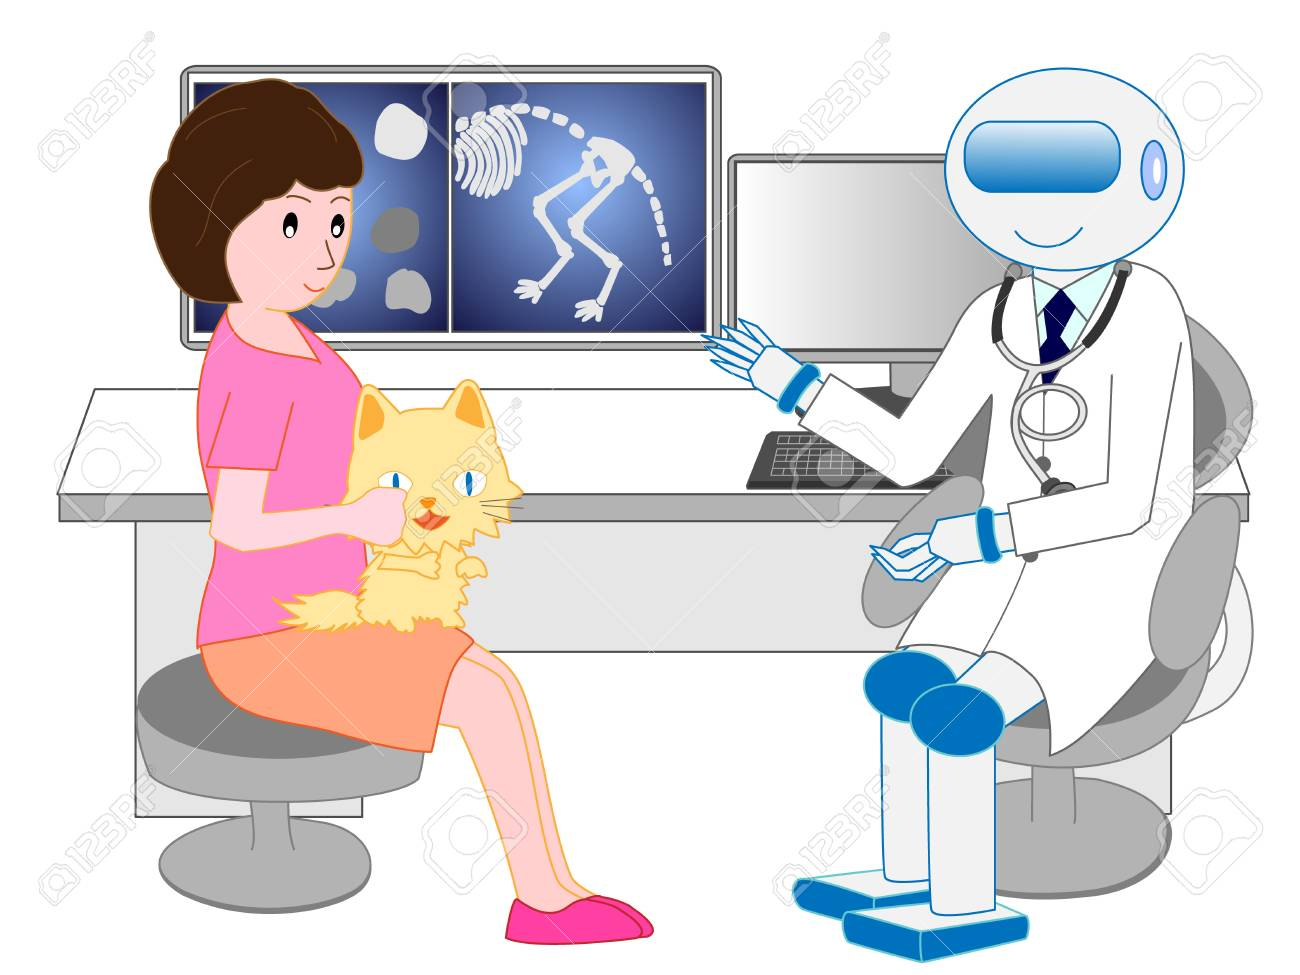 Receiving treatment from the artificial intelligence robot veterinarian